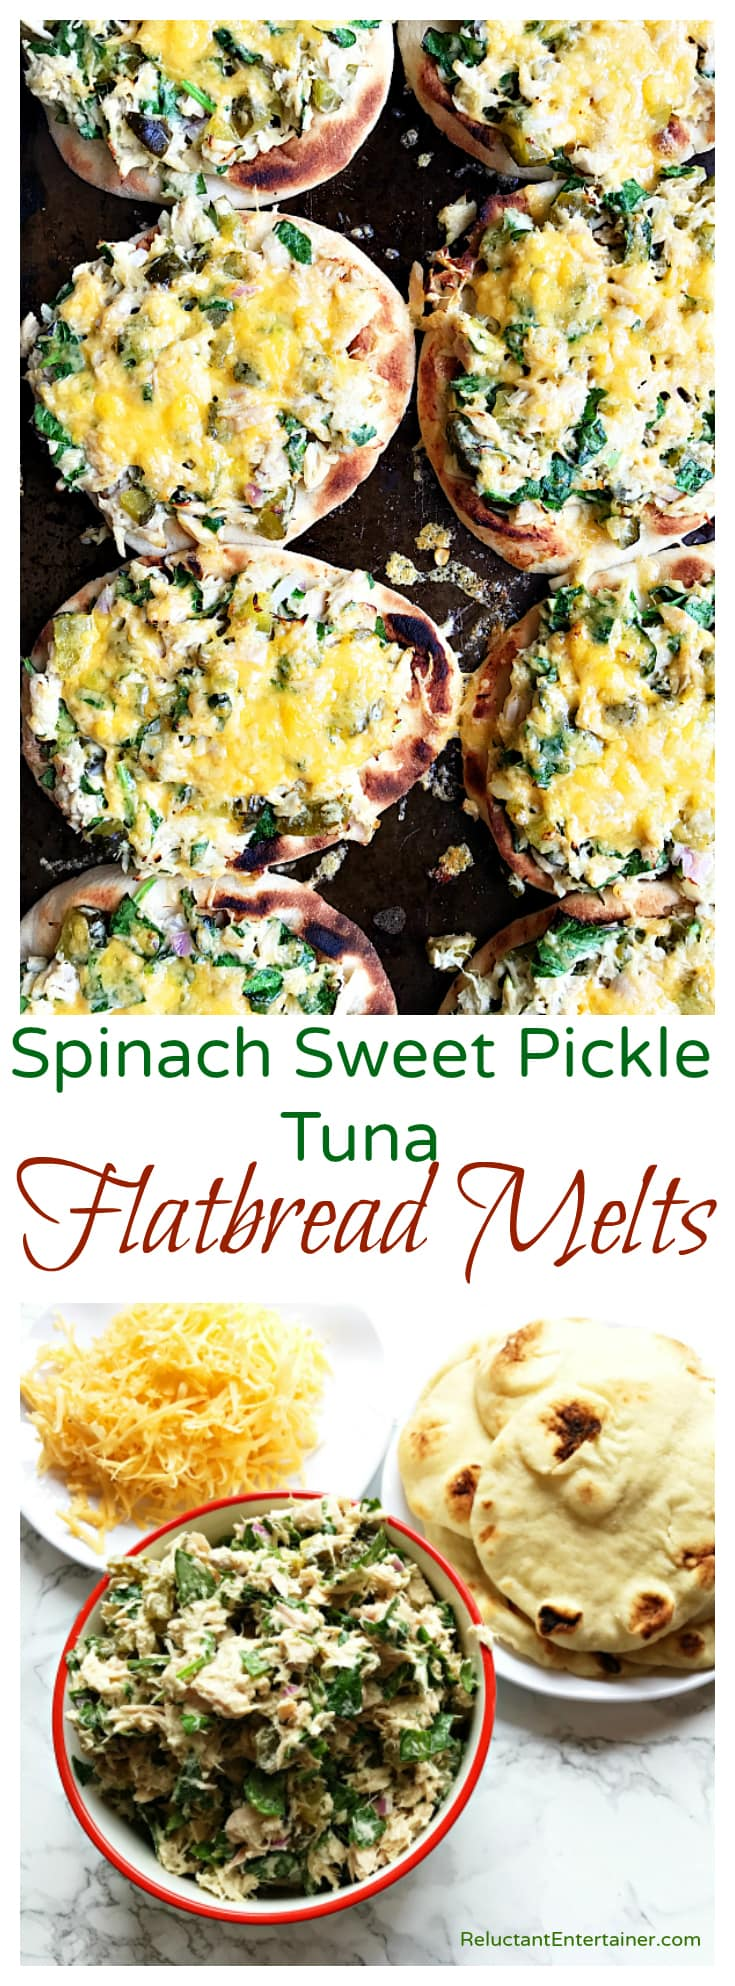 Spinach Sweet Pickle Tuna Flatbread Melts